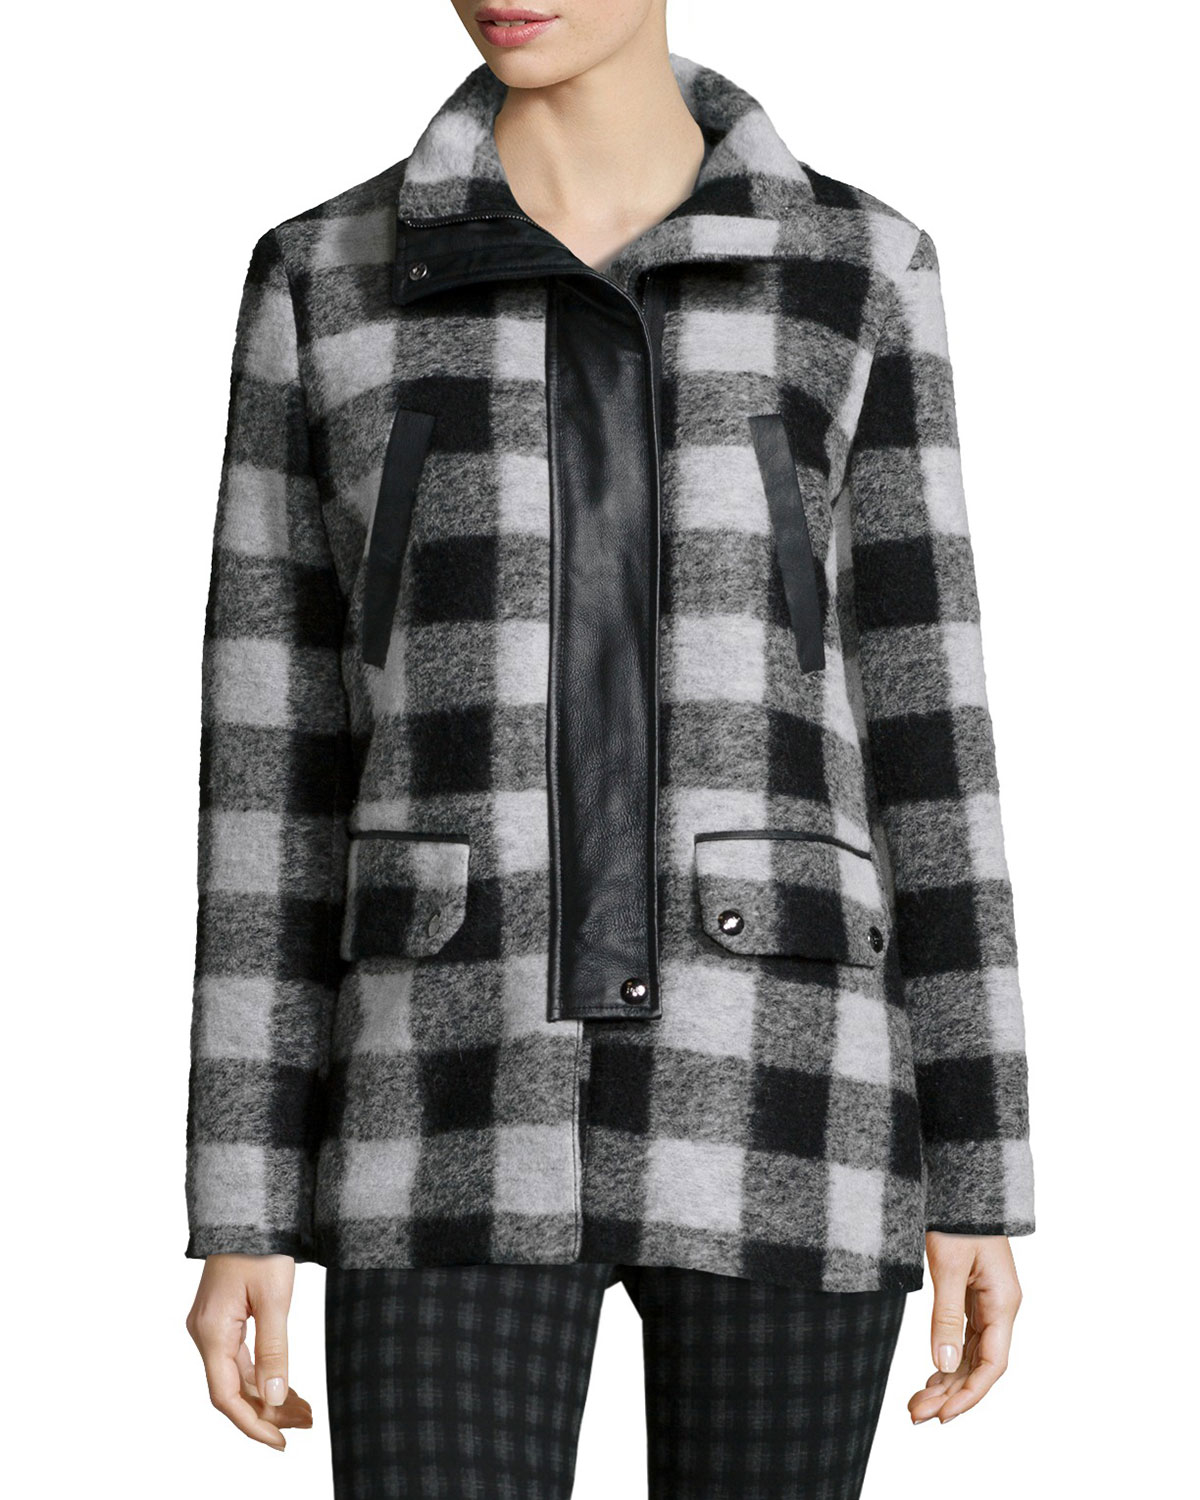 Shop for RED 3XL Plus Size Faux Fur Hooded Plaid Poncho Coat online at $ and discover fashion at sportworlds.gq Cheapest and Latest women & men fashion site including categories such as dresses, shoes, bags and jewelry with free shipping all over the sportworlds.gq: Rosegal.